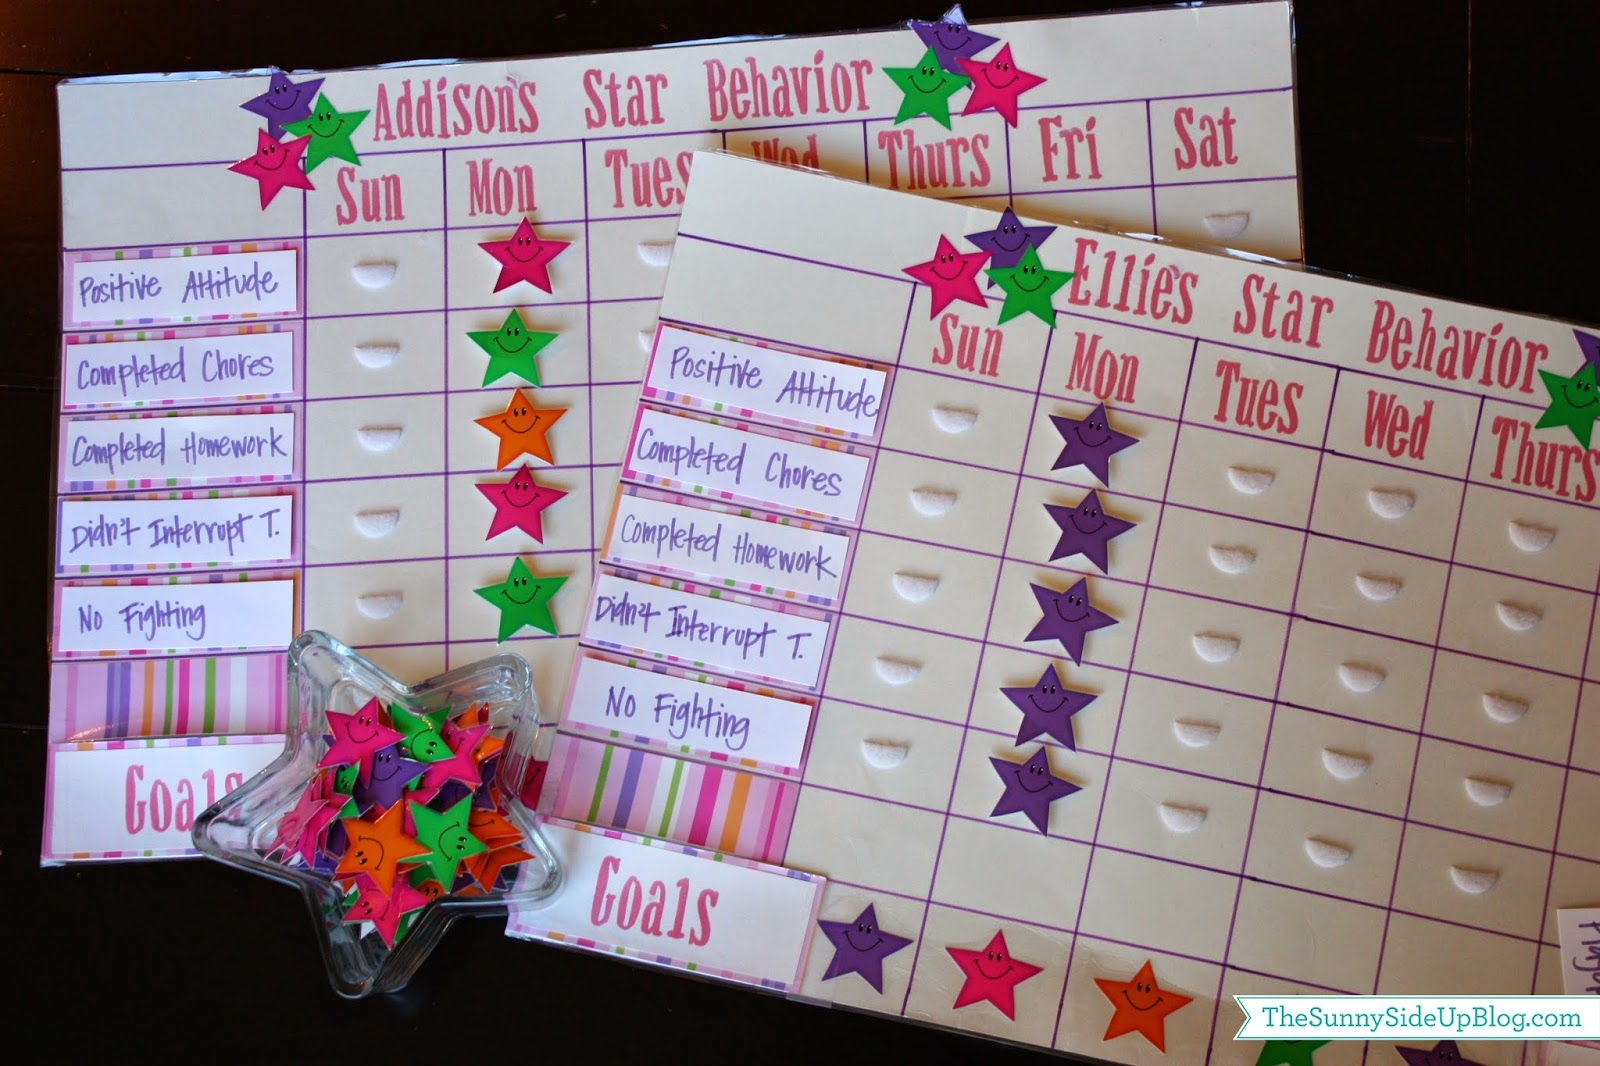 Kids' Chore Charts/Allowance System - The Sunny Side Up Blog